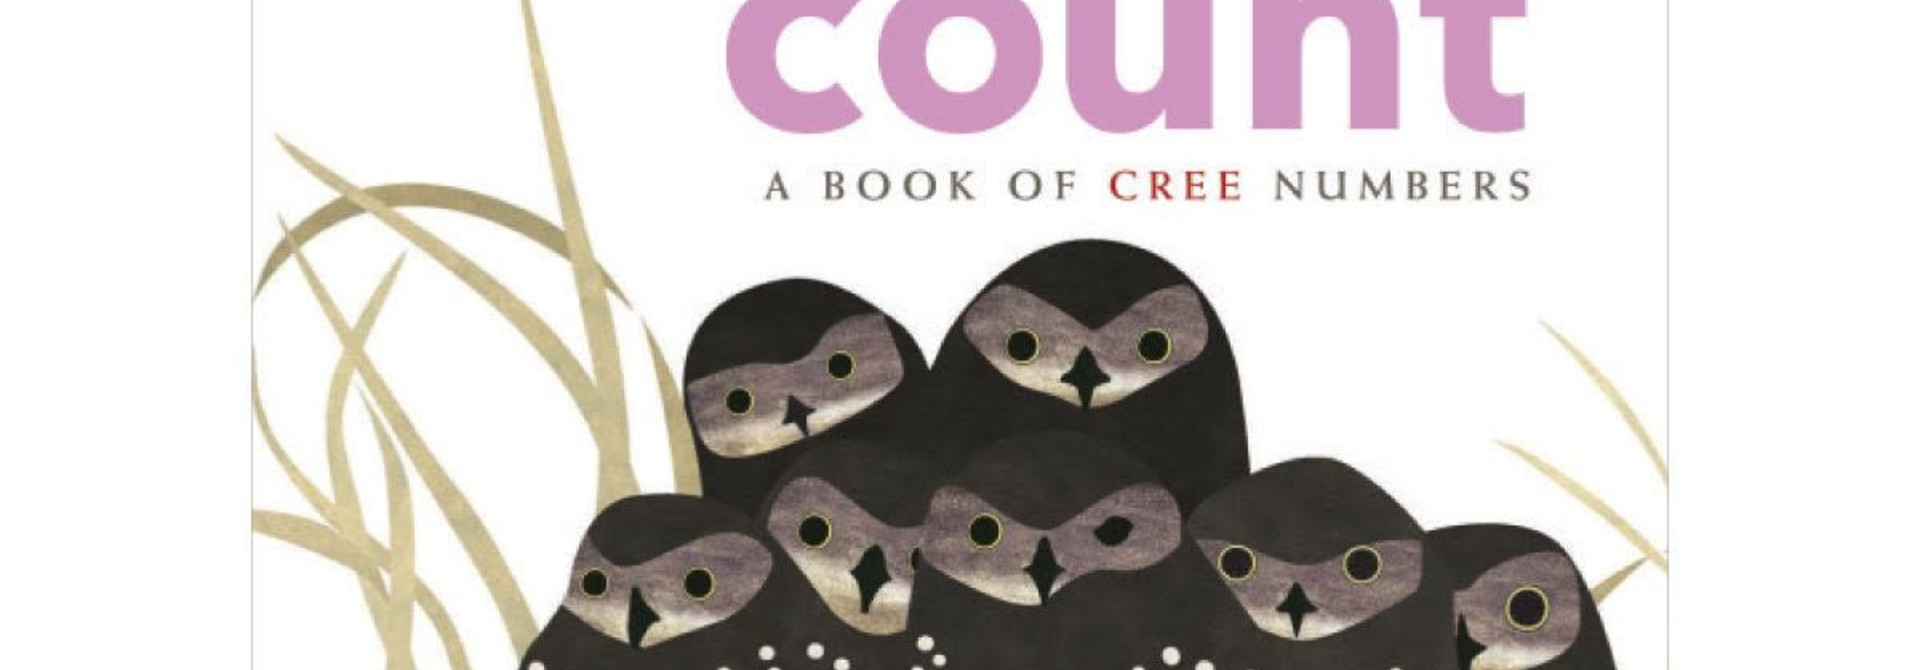 Board Book - We All Count: A Book of Cree Numbers by Julie Flett